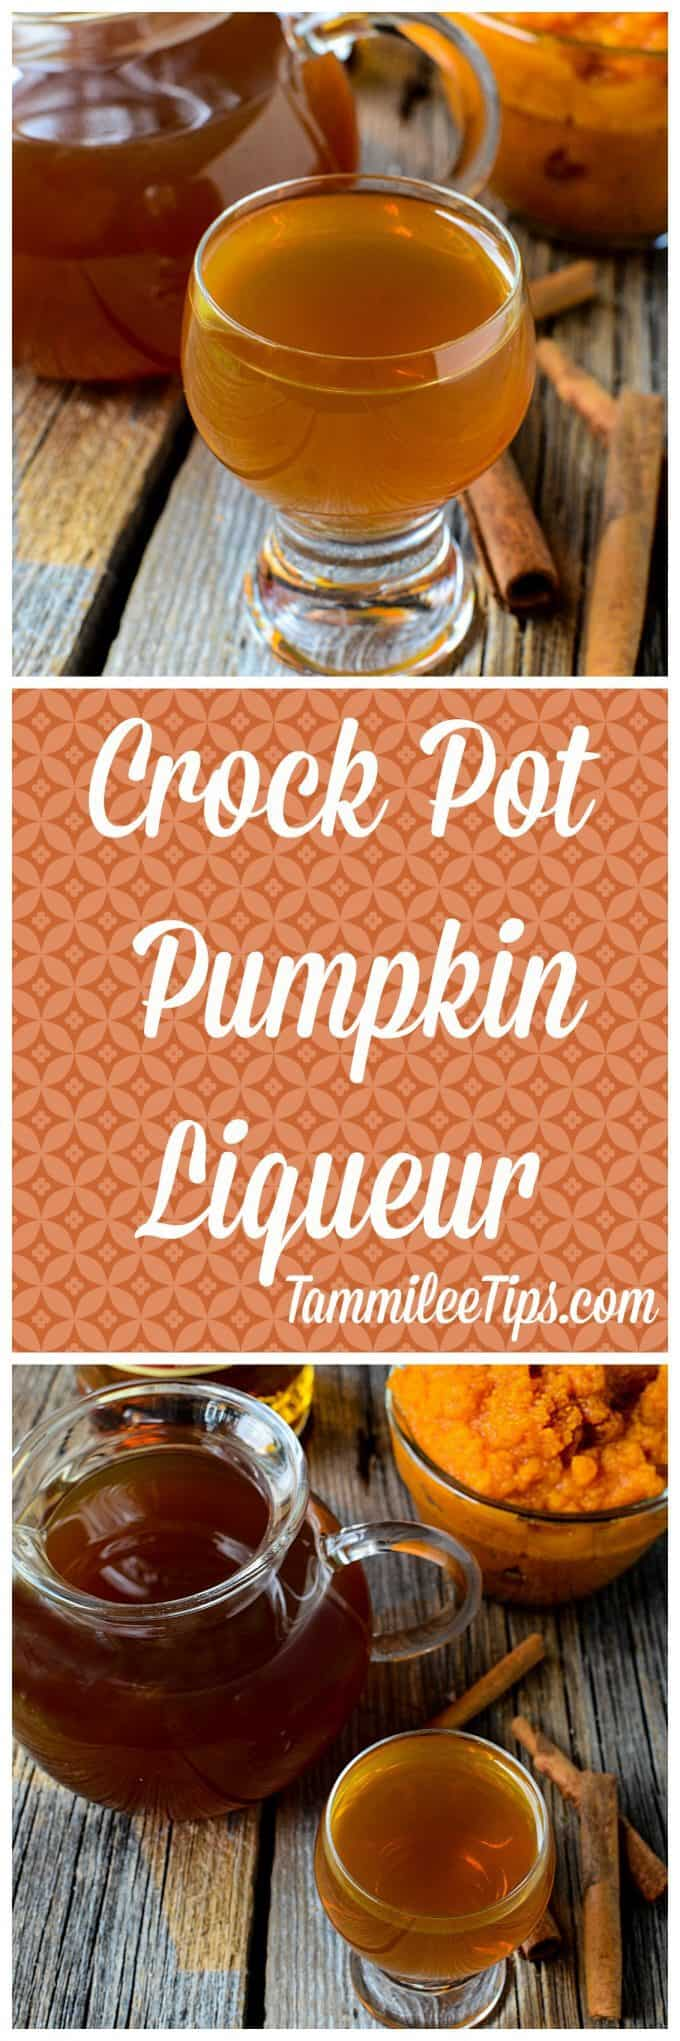 Crock Pot Pumpkin Liqueur Recipe! Take your pumpkin spice lattes to a new level by making them an adult alcoholic beverage! Perfect for fall this slow cooker recipe is super easy to make. This is a great DIY Gift for friends.